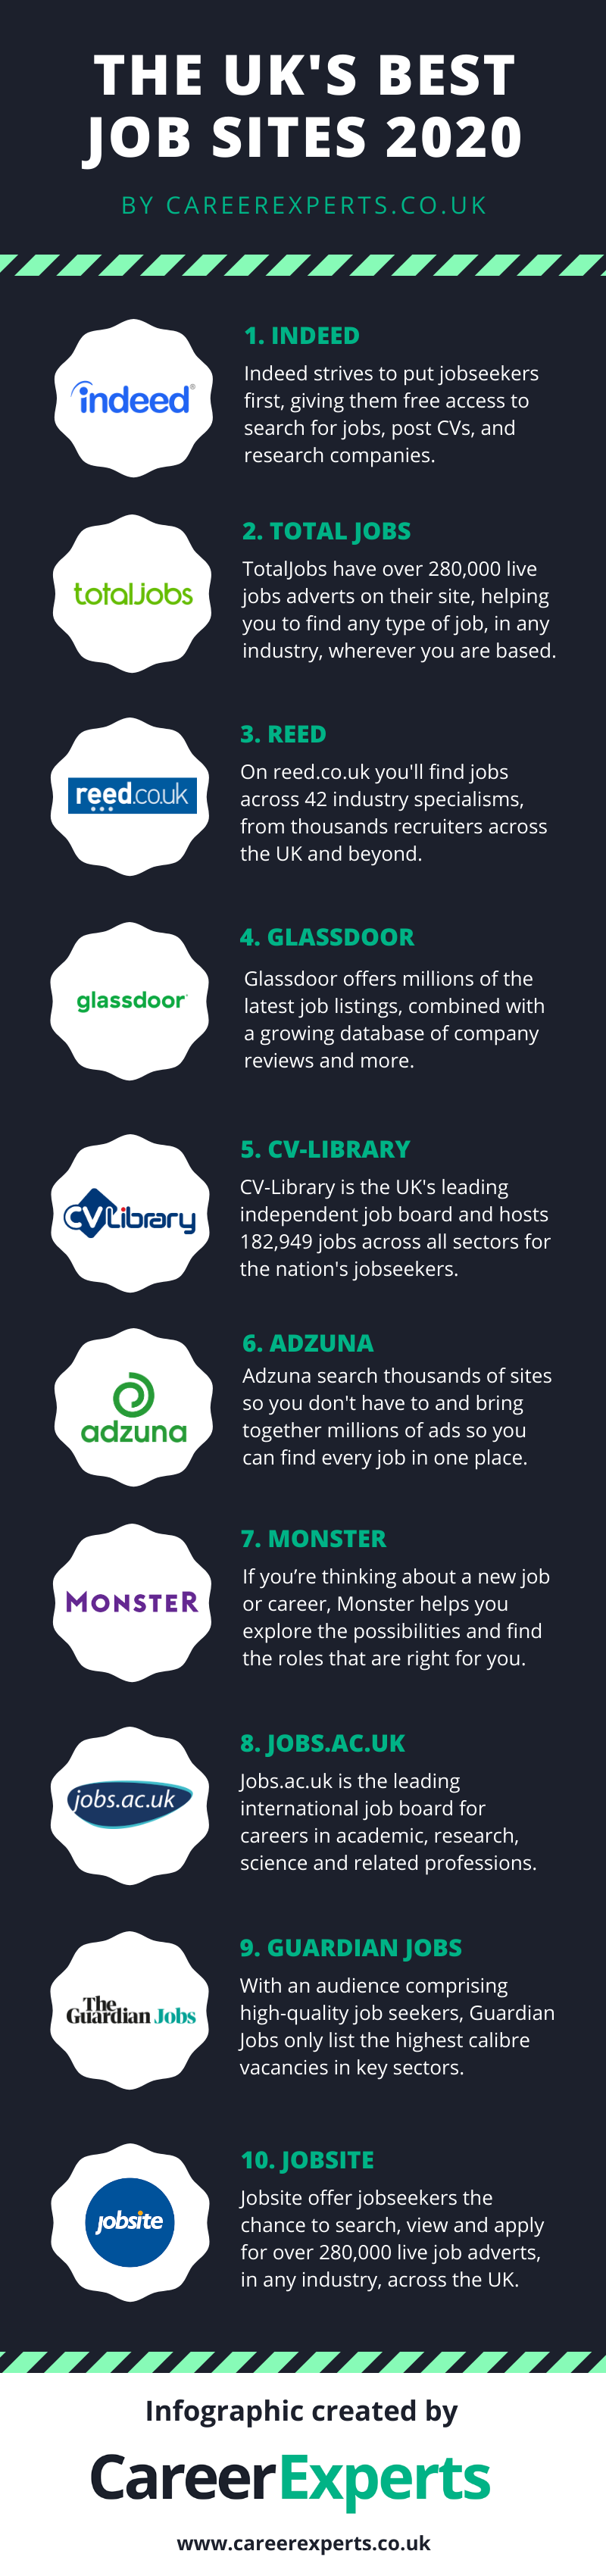 top job sites UK 2020